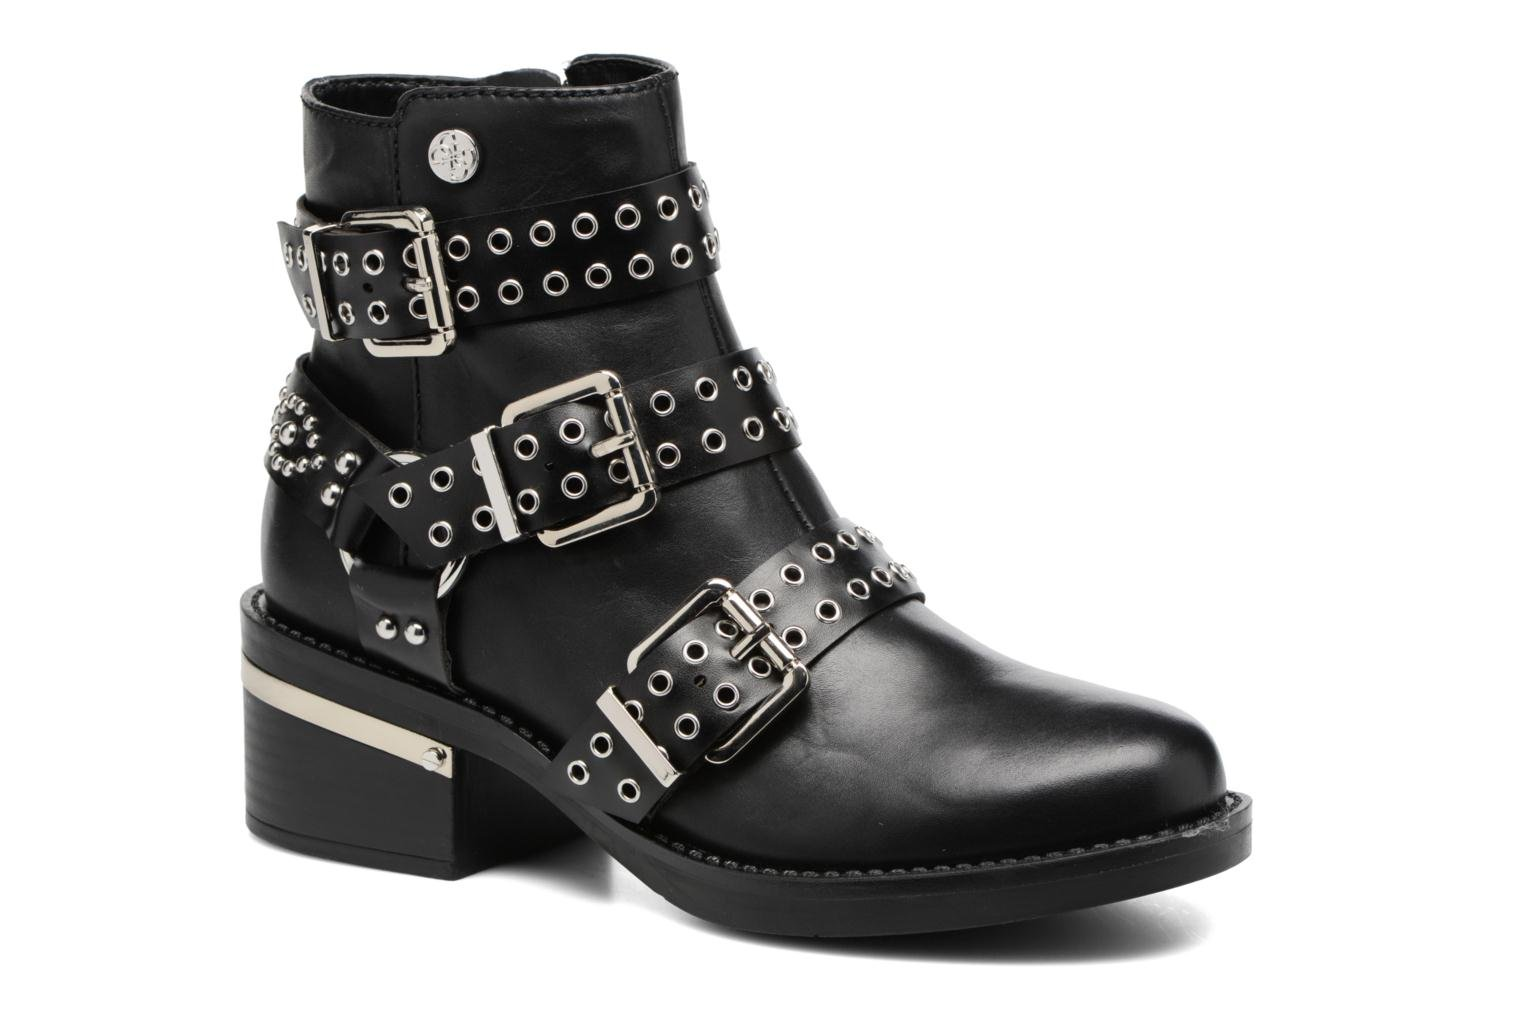 Marques Chaussure luxe femme Guess femme Funtime2 Black